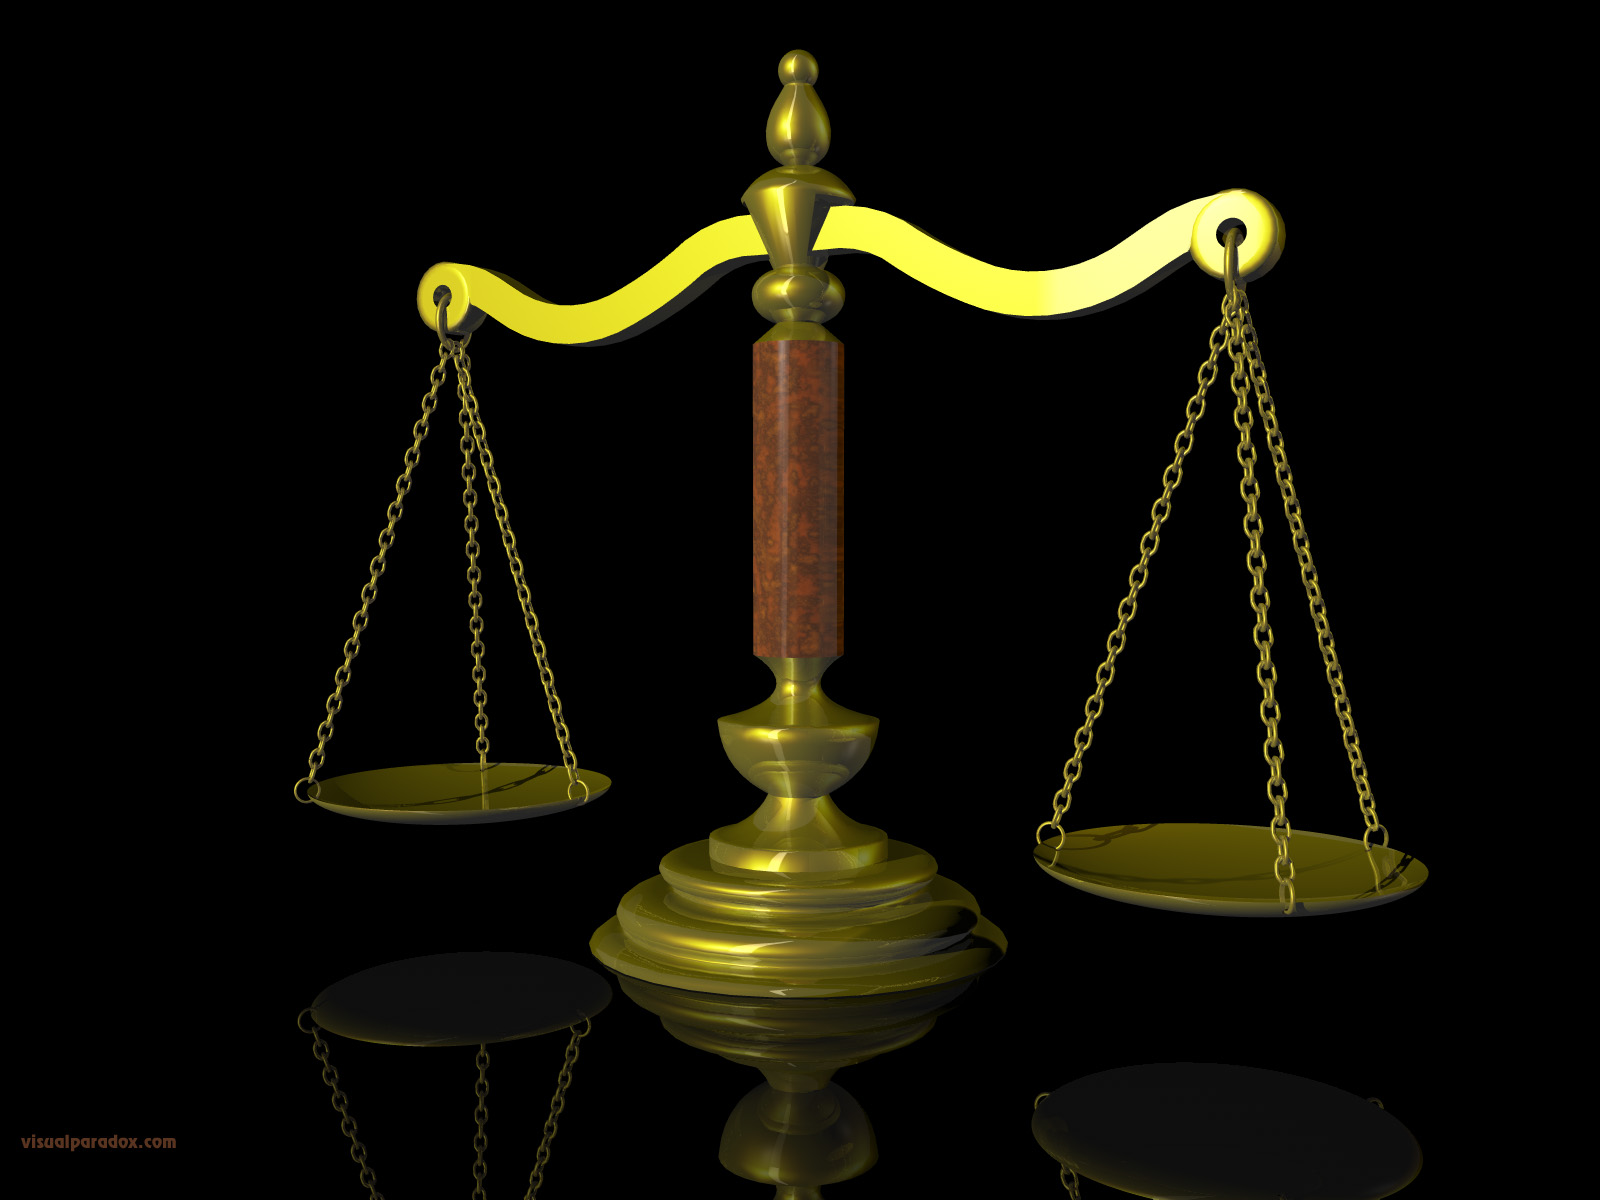 weigh, justice, lawyer, heavy, brass, gold, balance, measure, balanced, law, weight, 3d, wallpaper